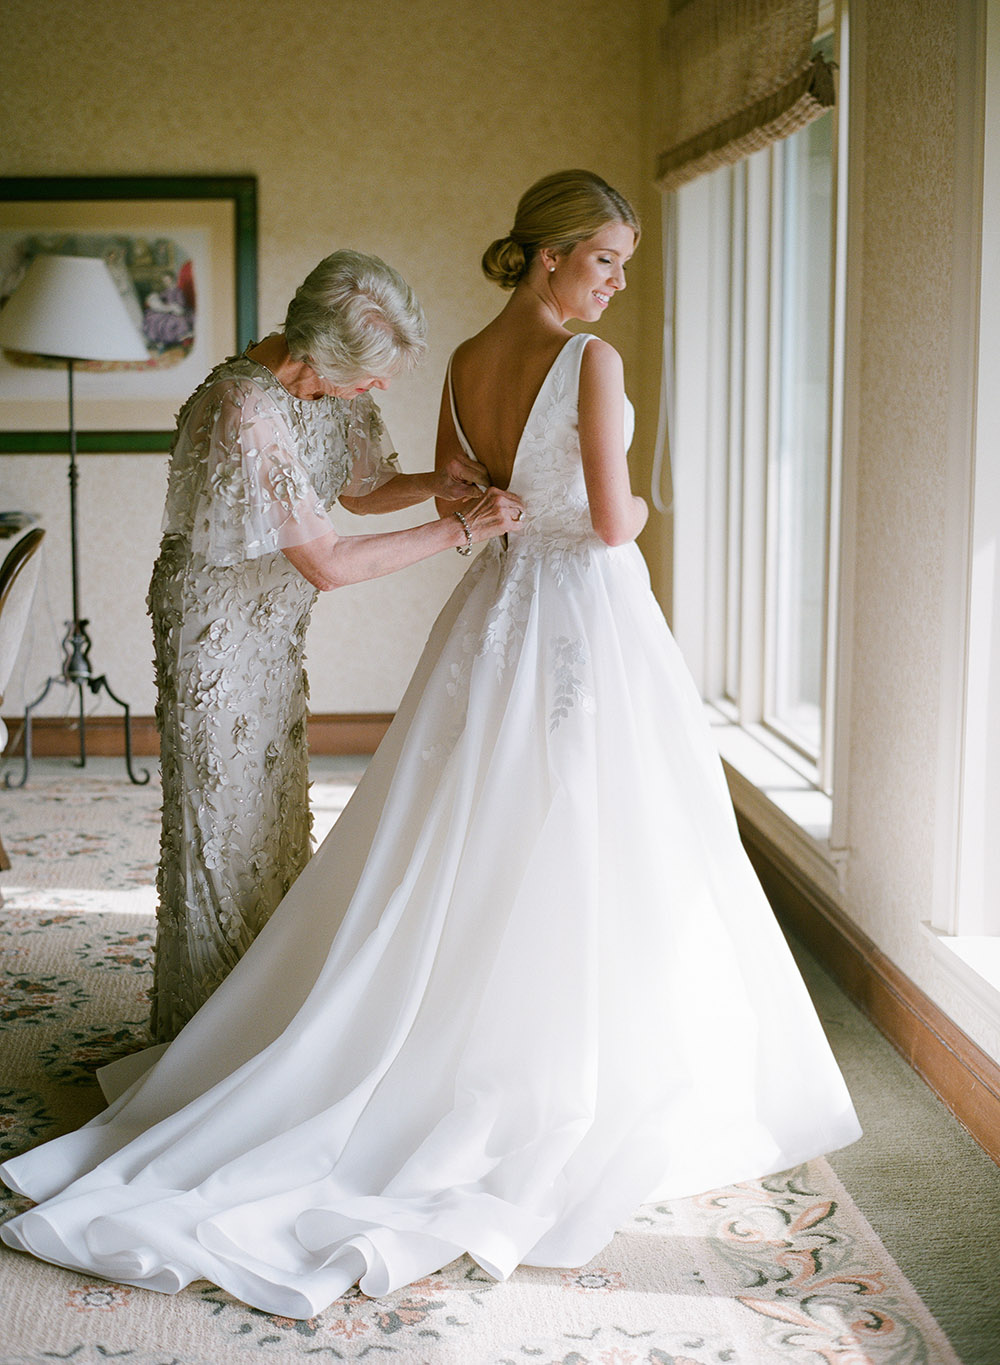 Bride getting ready while her mother helps her in her elegant and classic white wedding dress.